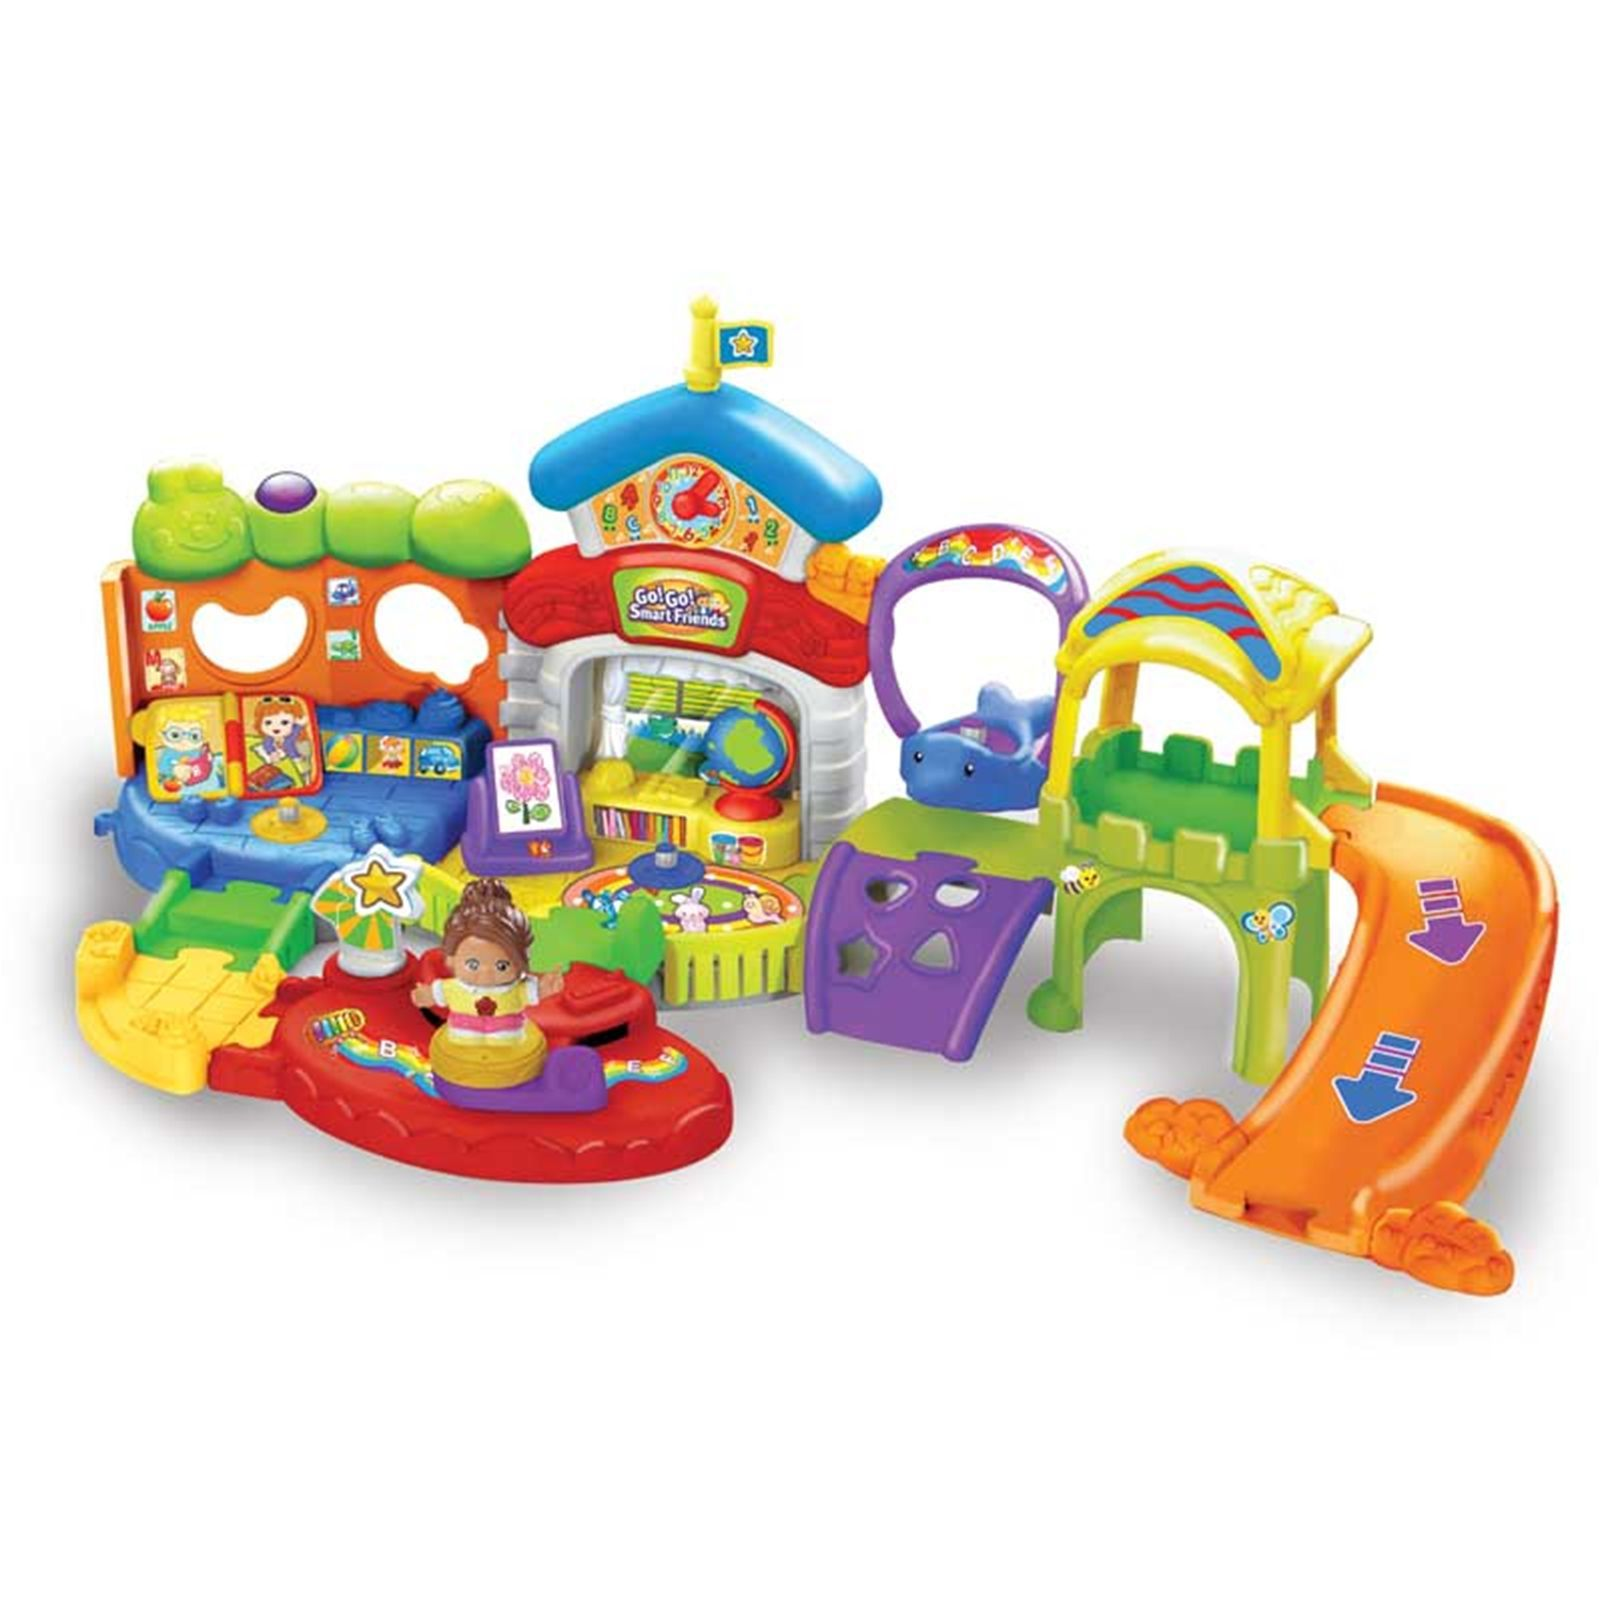 vtech tut tut copains ecole maternelle magique multicolore brandalley. Black Bedroom Furniture Sets. Home Design Ideas